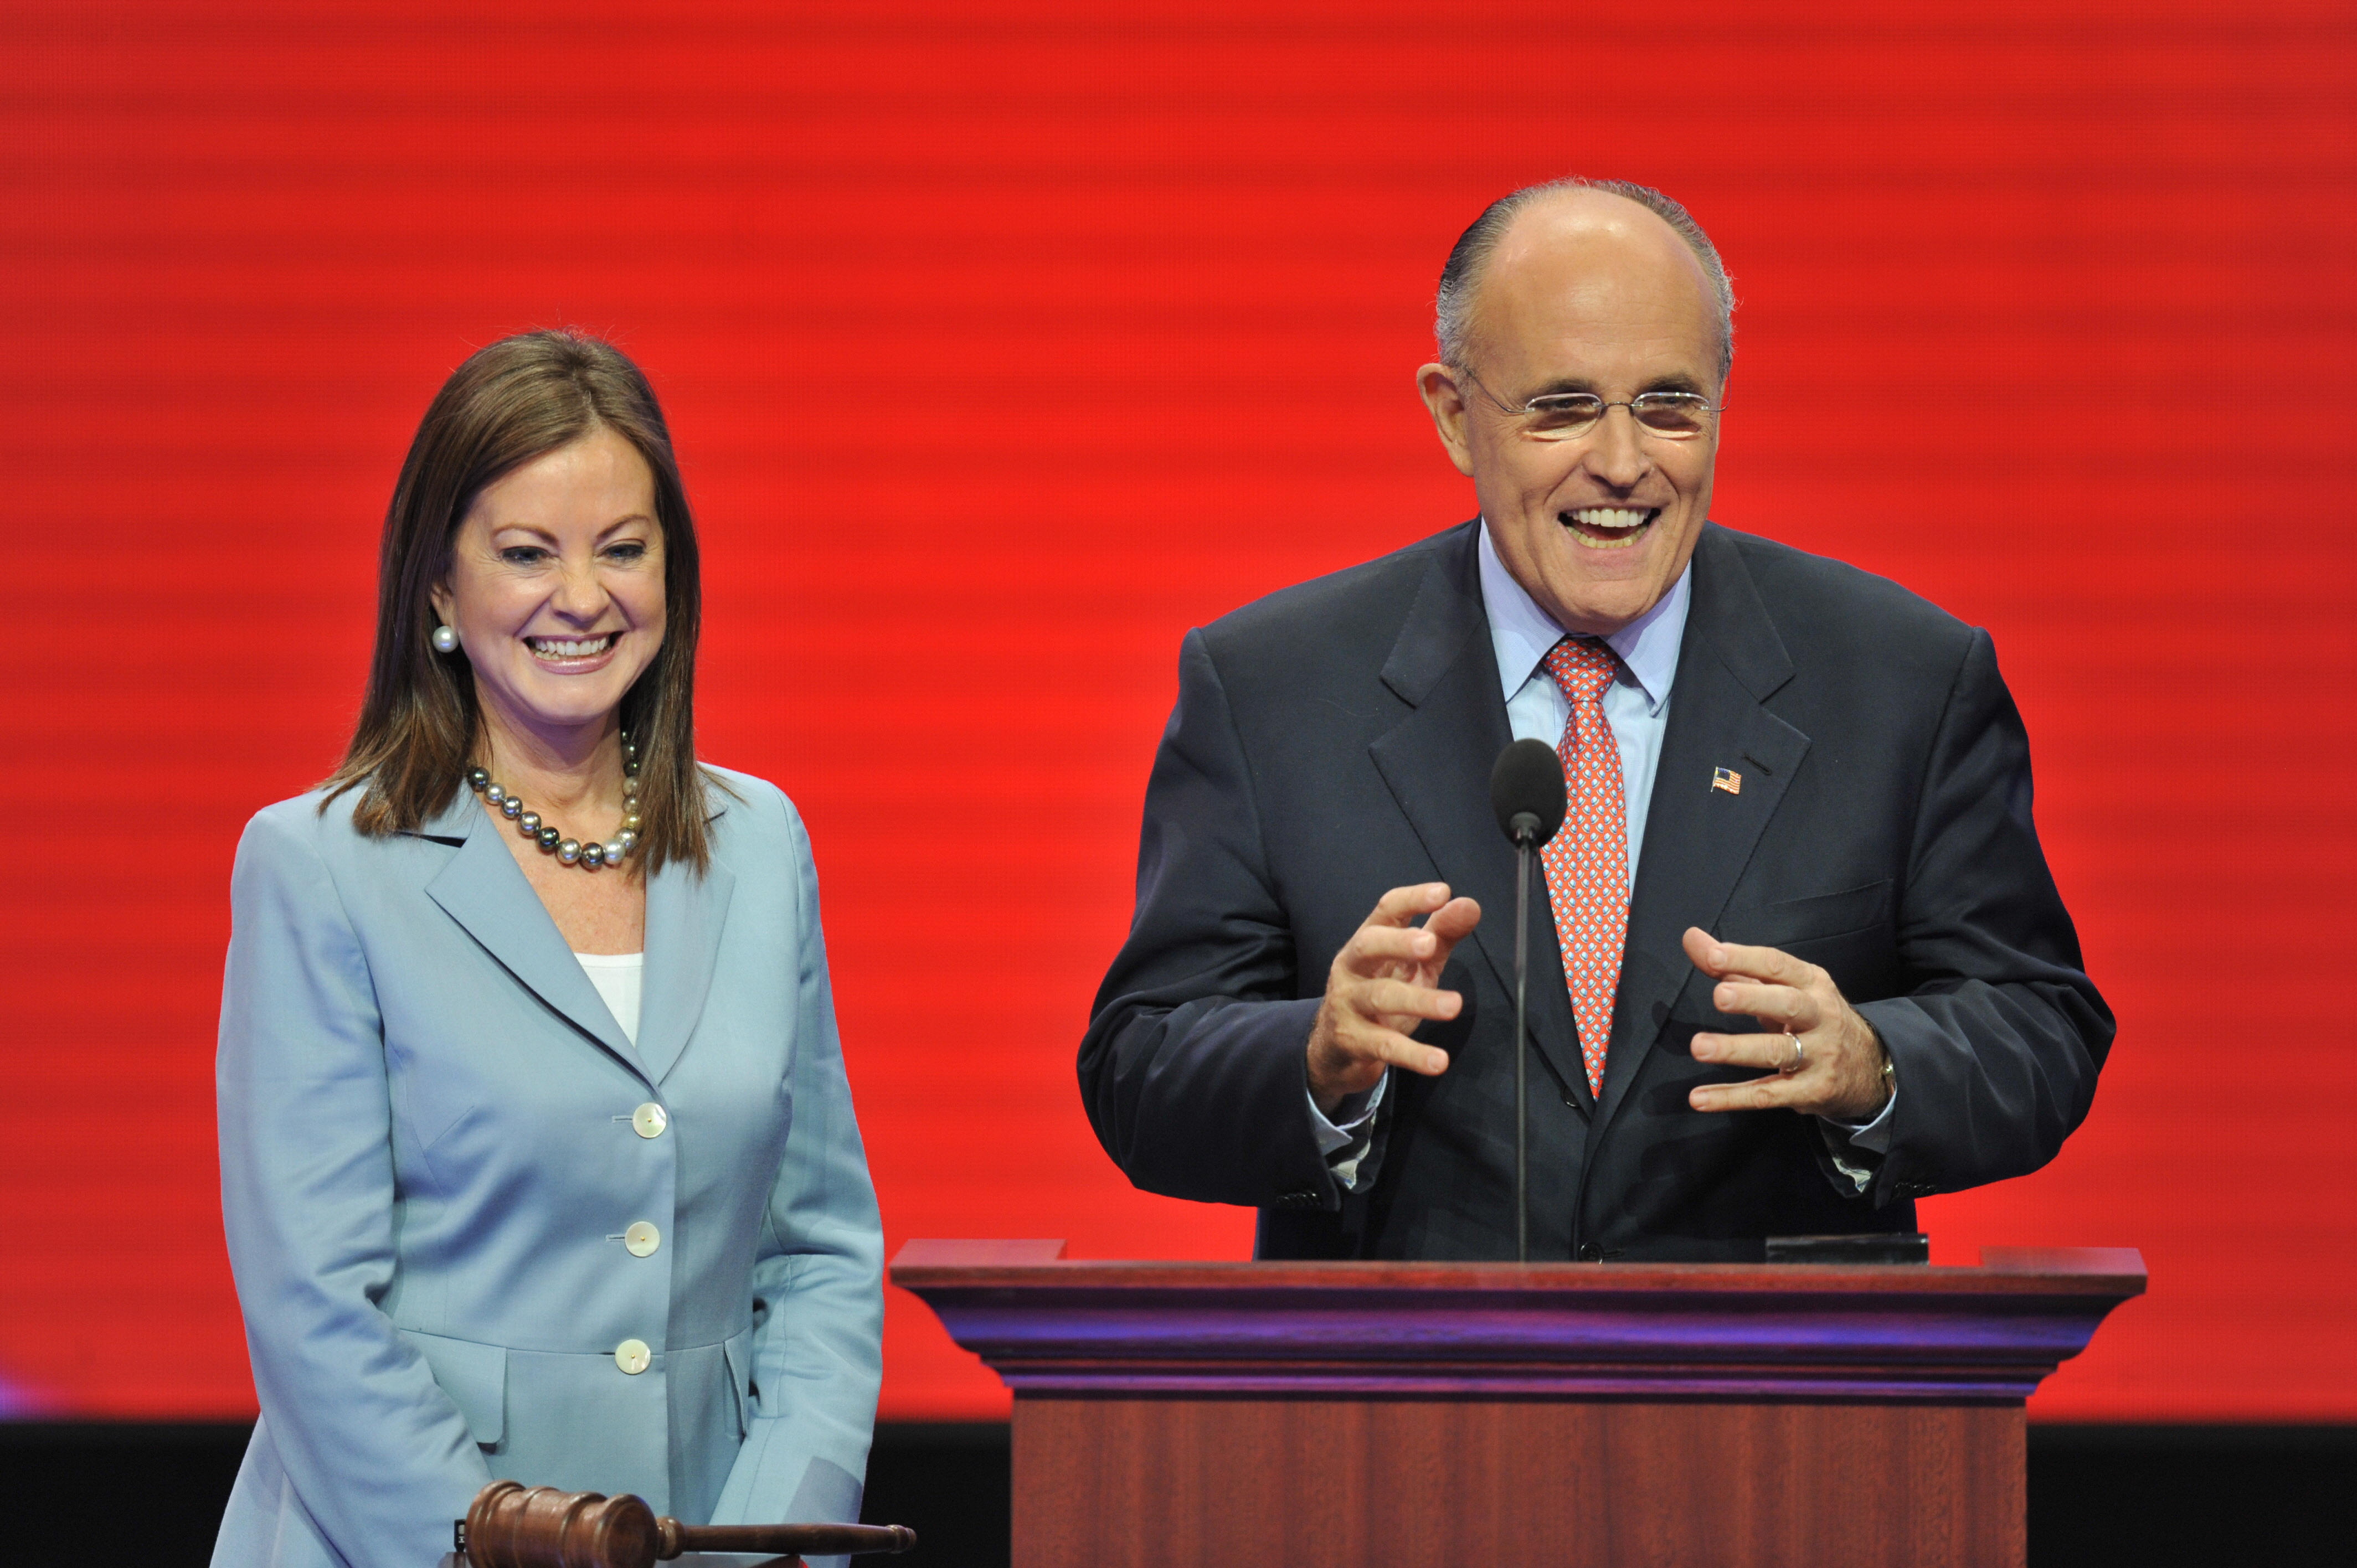 Rudy Giuliani and his wife Judith